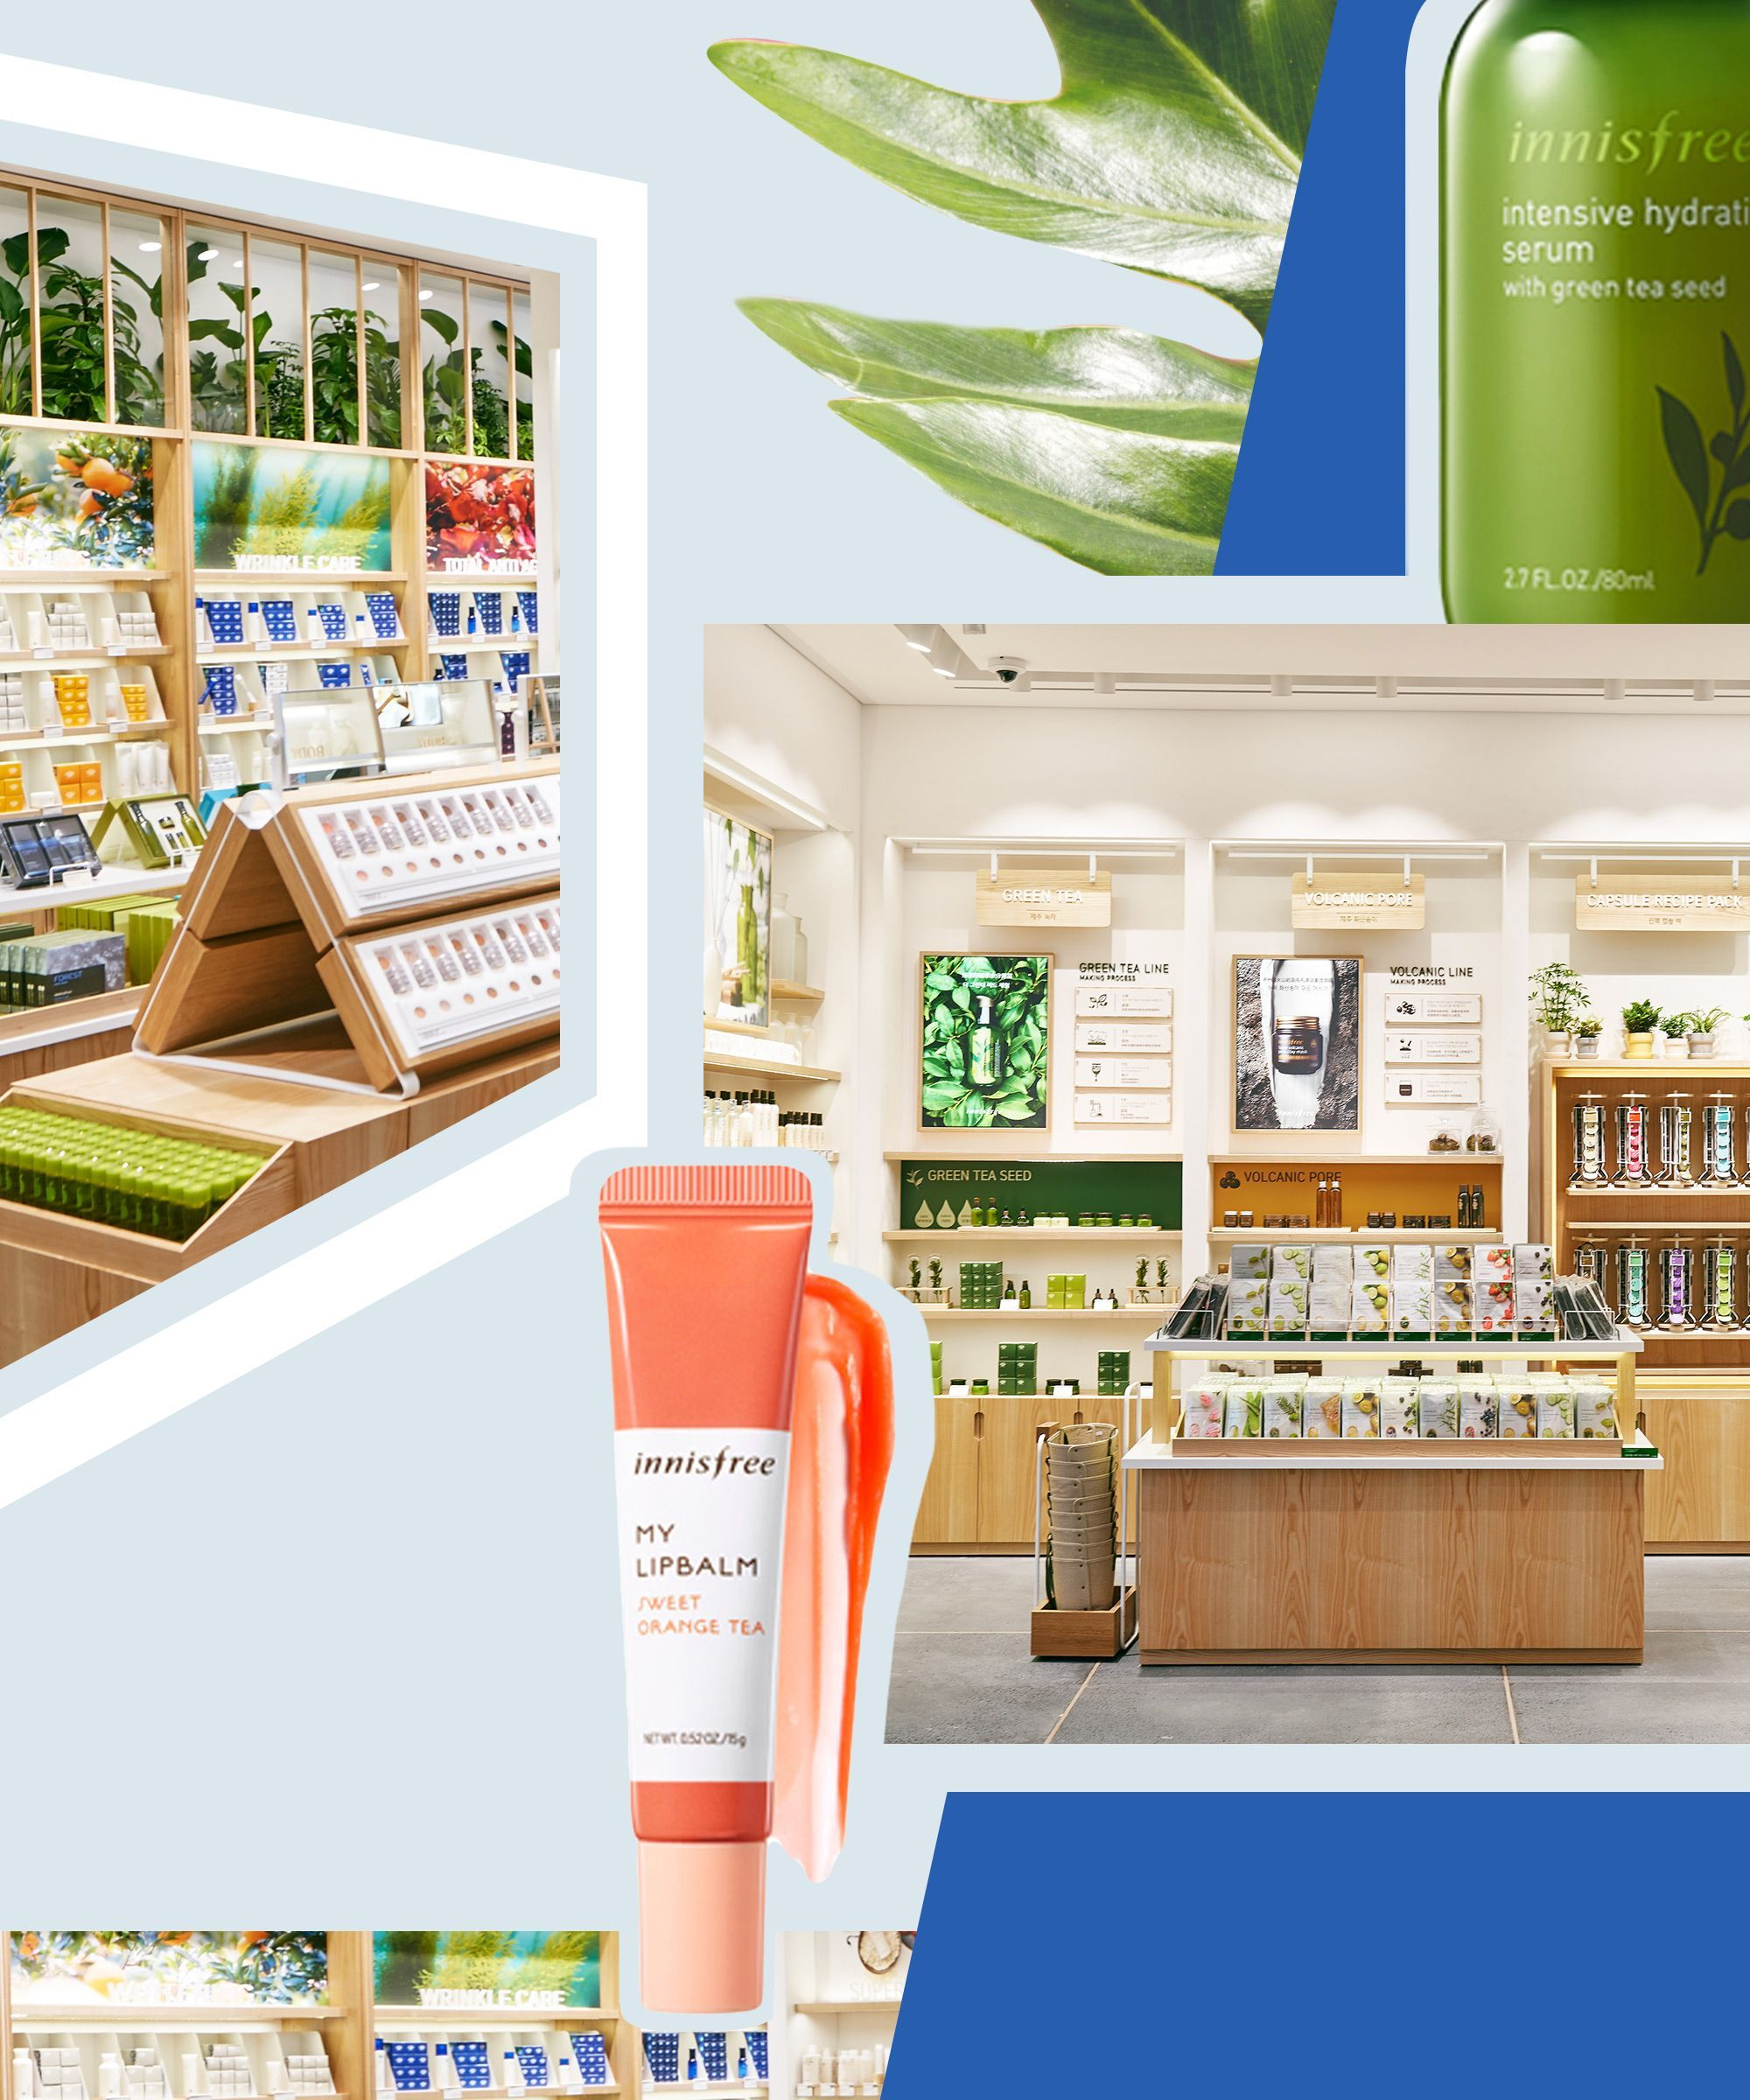 16 Beauty Stores You NEED To Visit In Seoul, South Korea